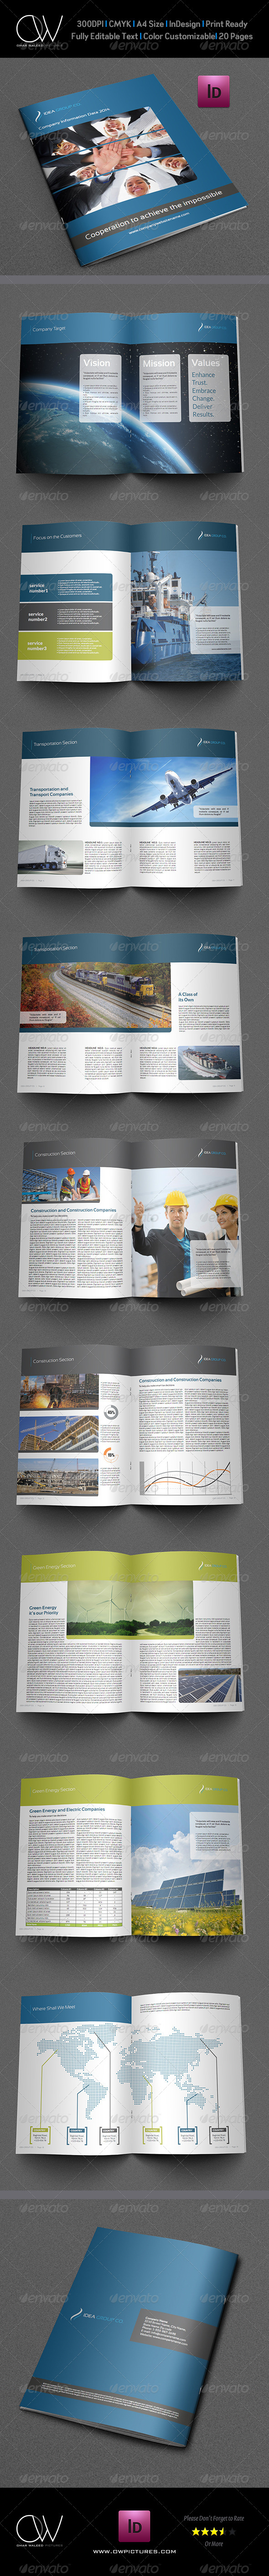 Corporate Brochure Template Vol3 - 20 Pages - Corporate Brochures